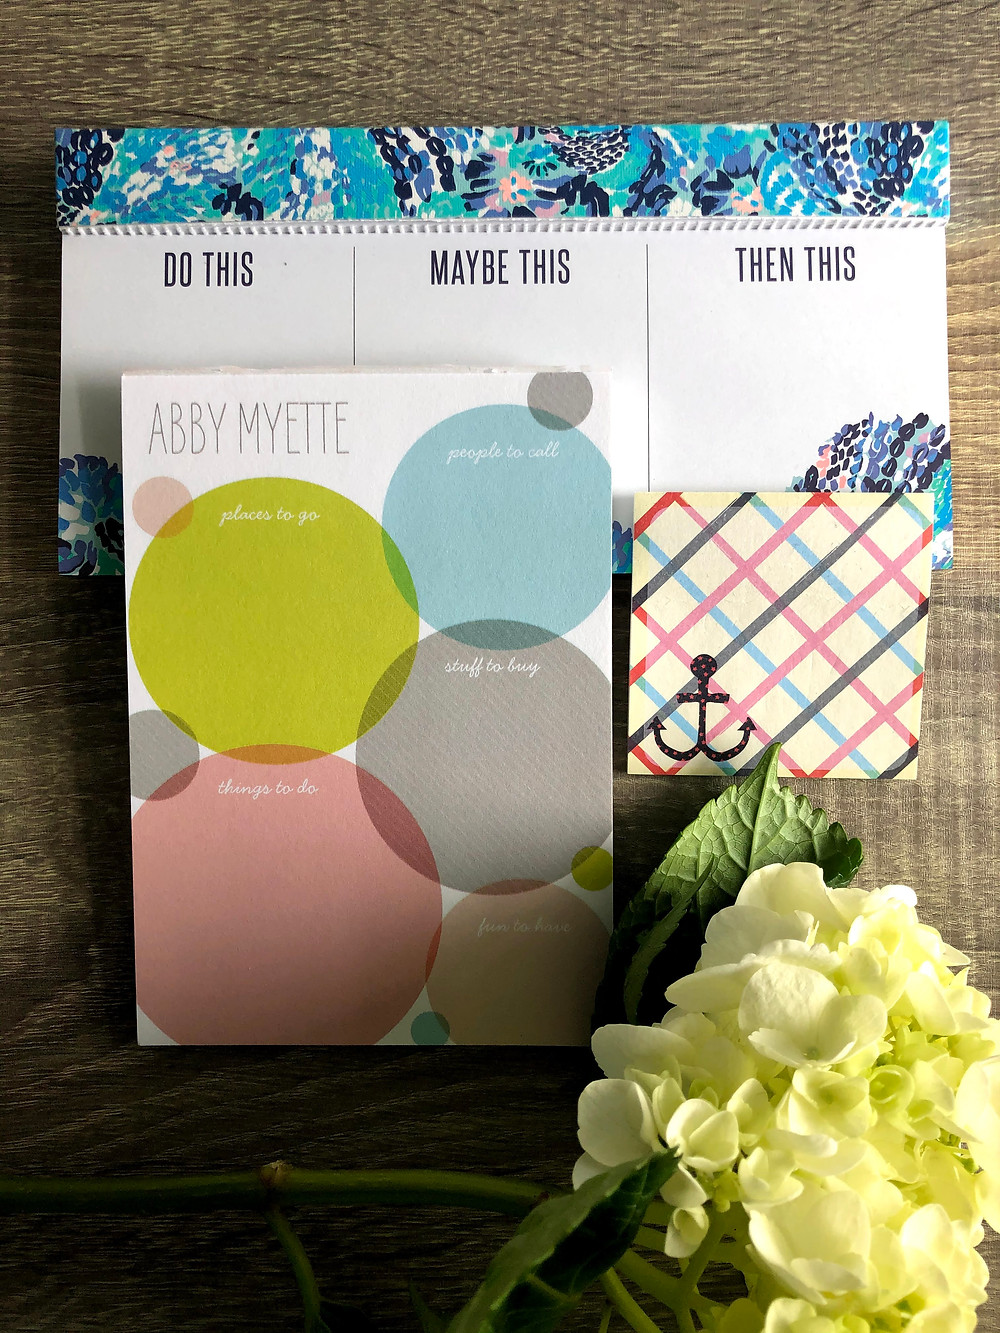 Three different notepads for organizing tasks.